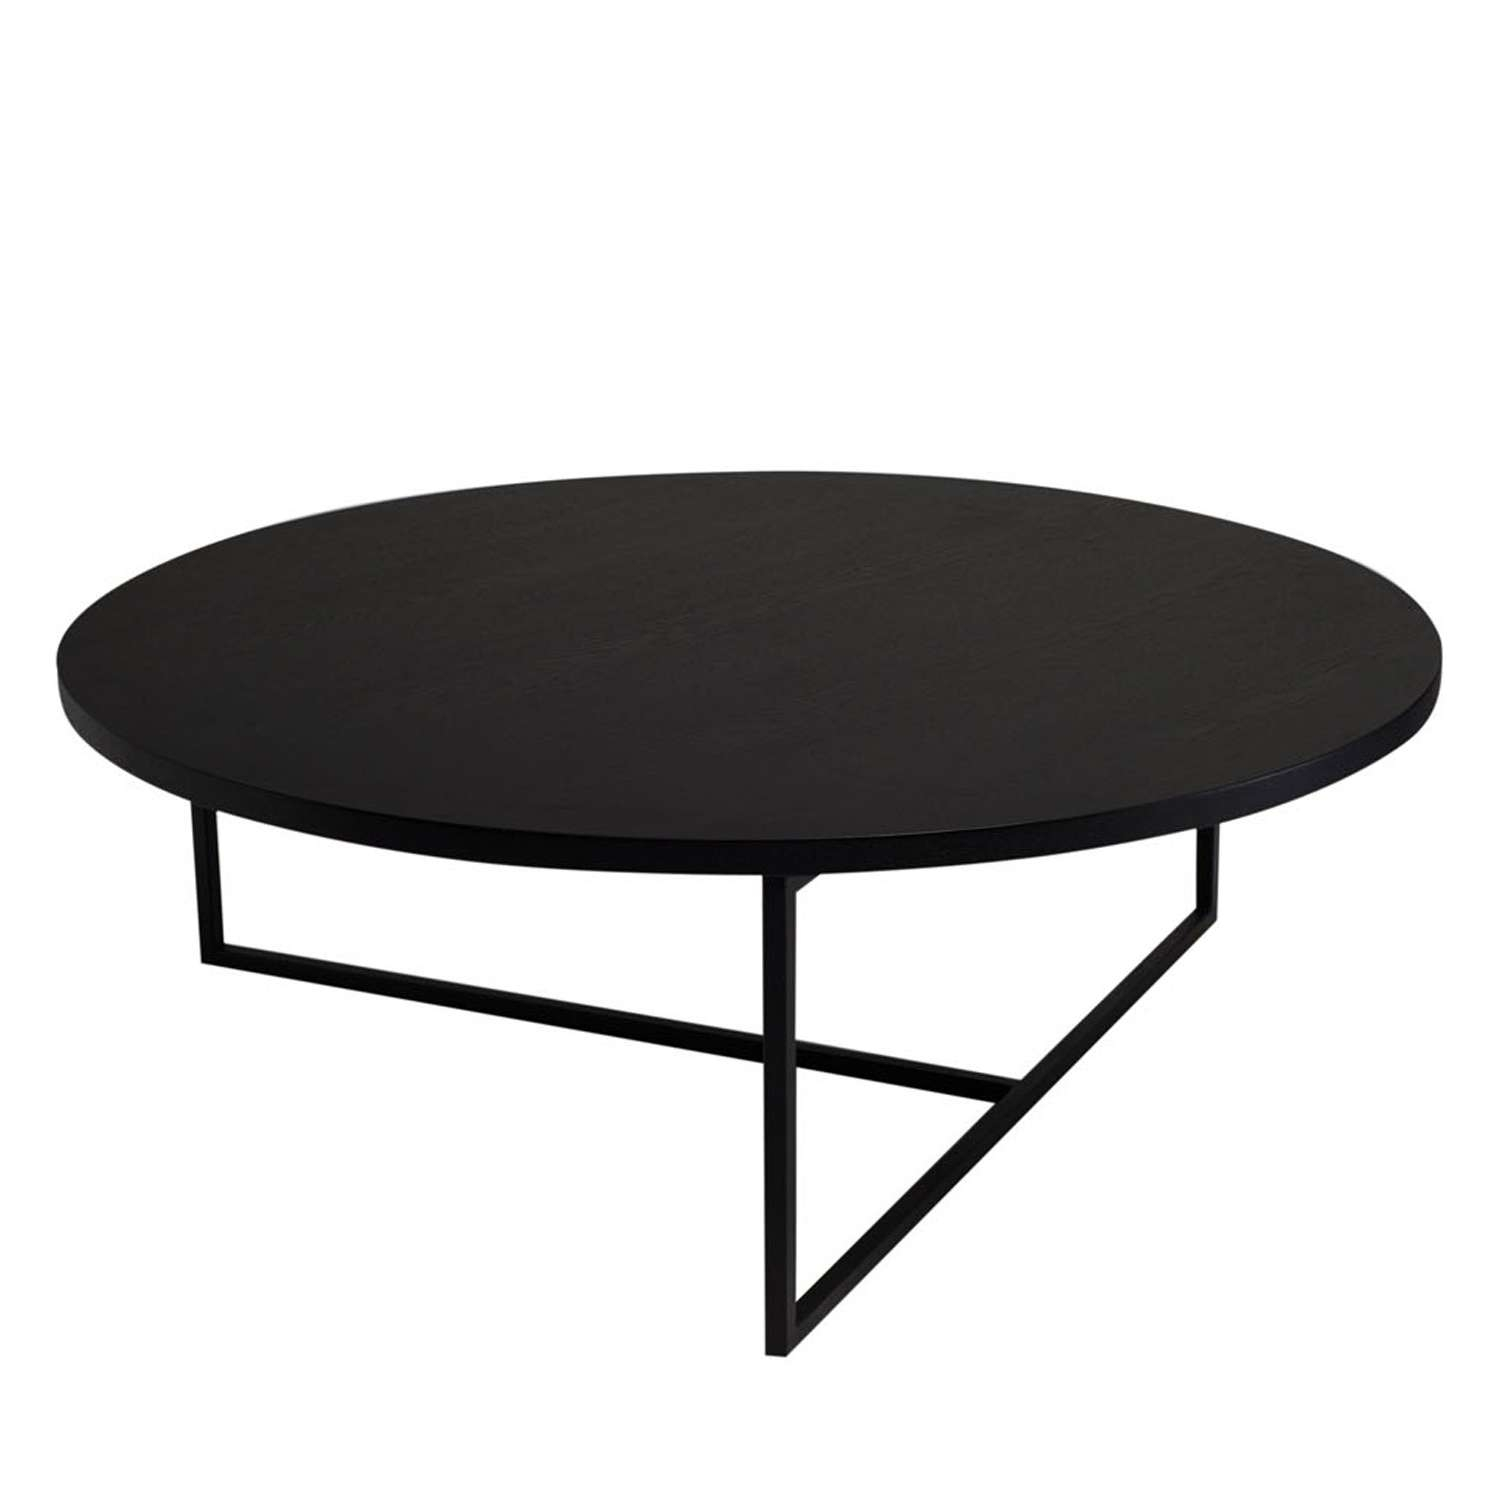 Coffee Tables Ideas: Best Black Round Coffee Table Sets Small Within Popular High Quality Coffee Tables (View 5 of 20)